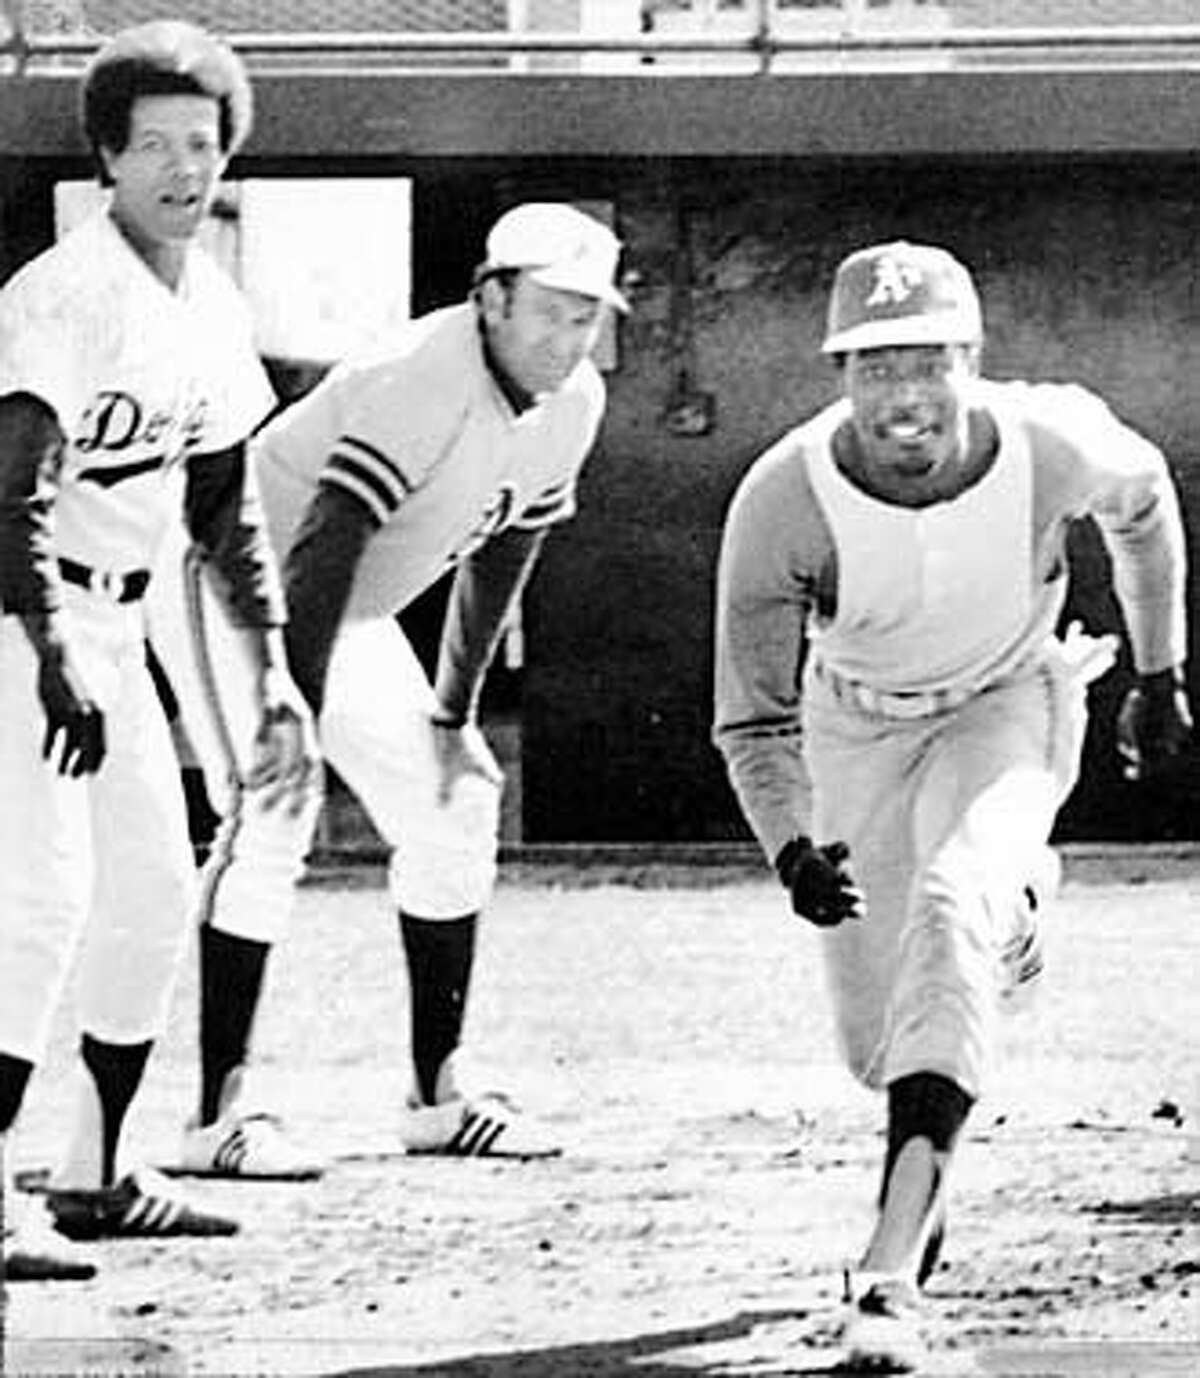 Herb Washington, hired especially as a runner by Charles O. Finley of the Oakland A's breaks away from first base under the watchful eyes of Maury Wills.